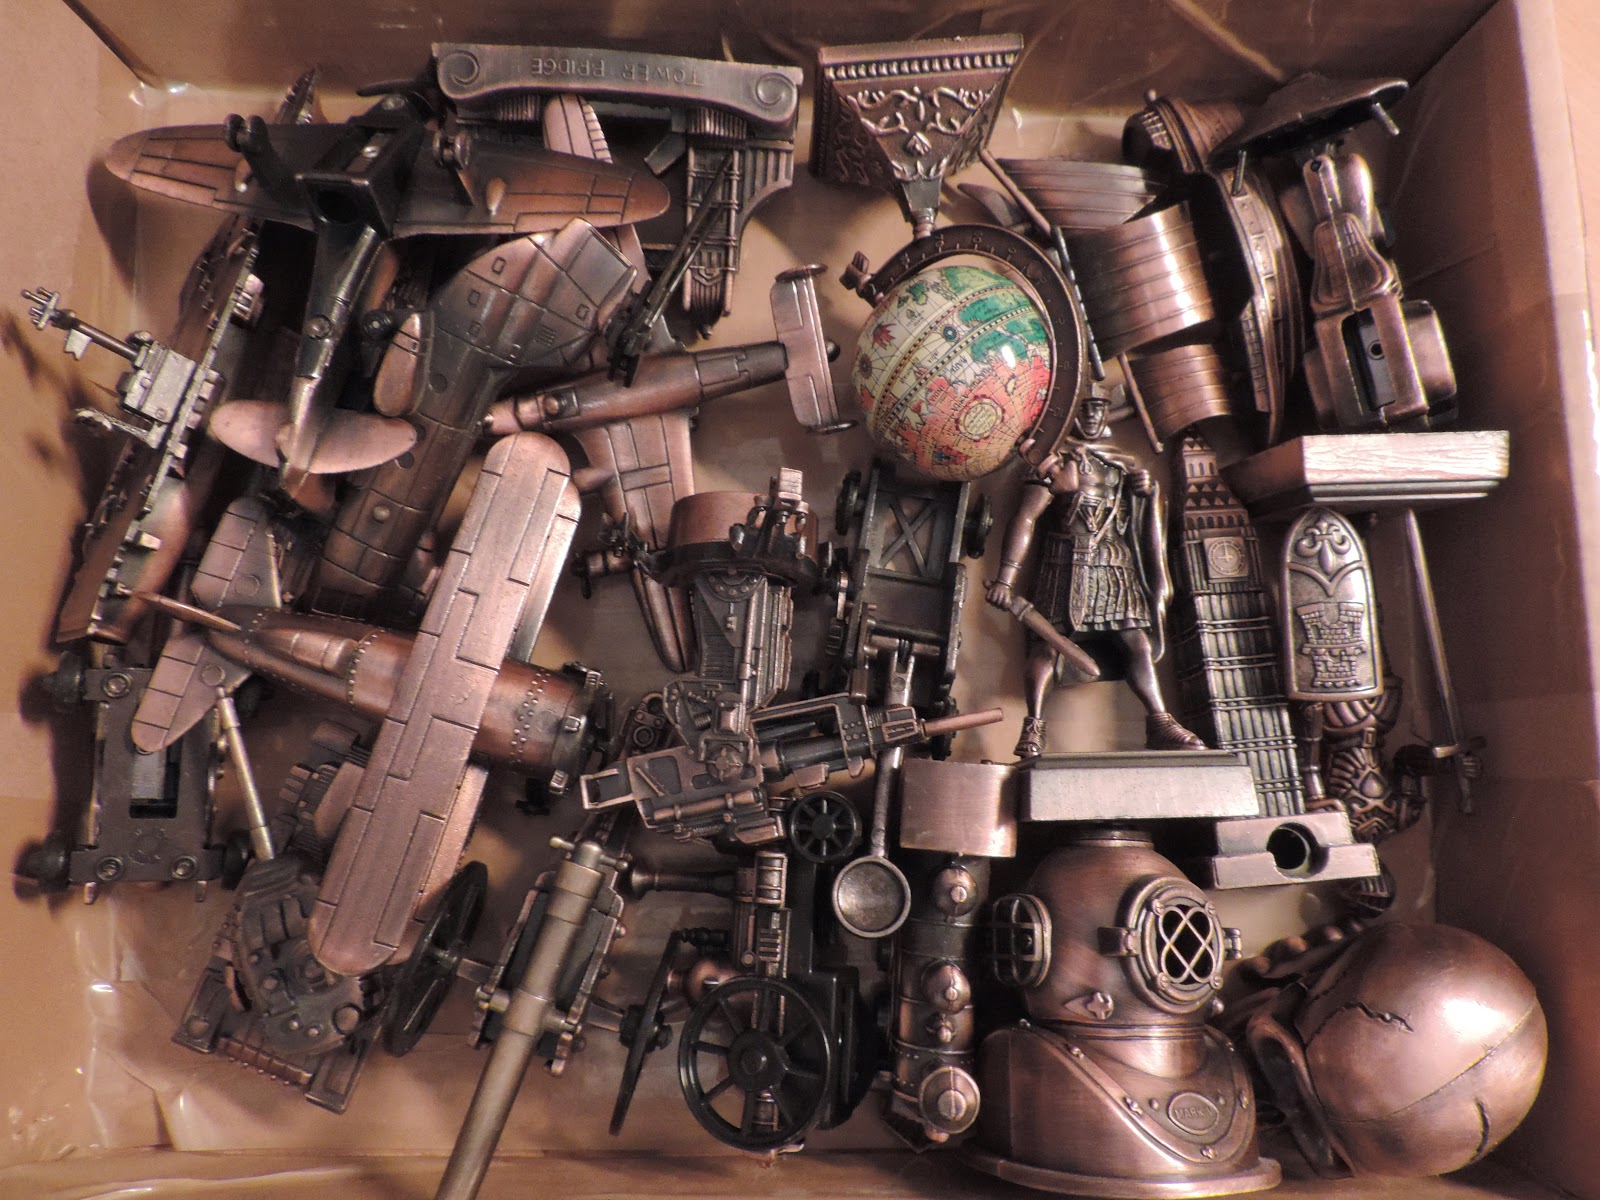 metal ornamental pencil sharpener collection for show and tell